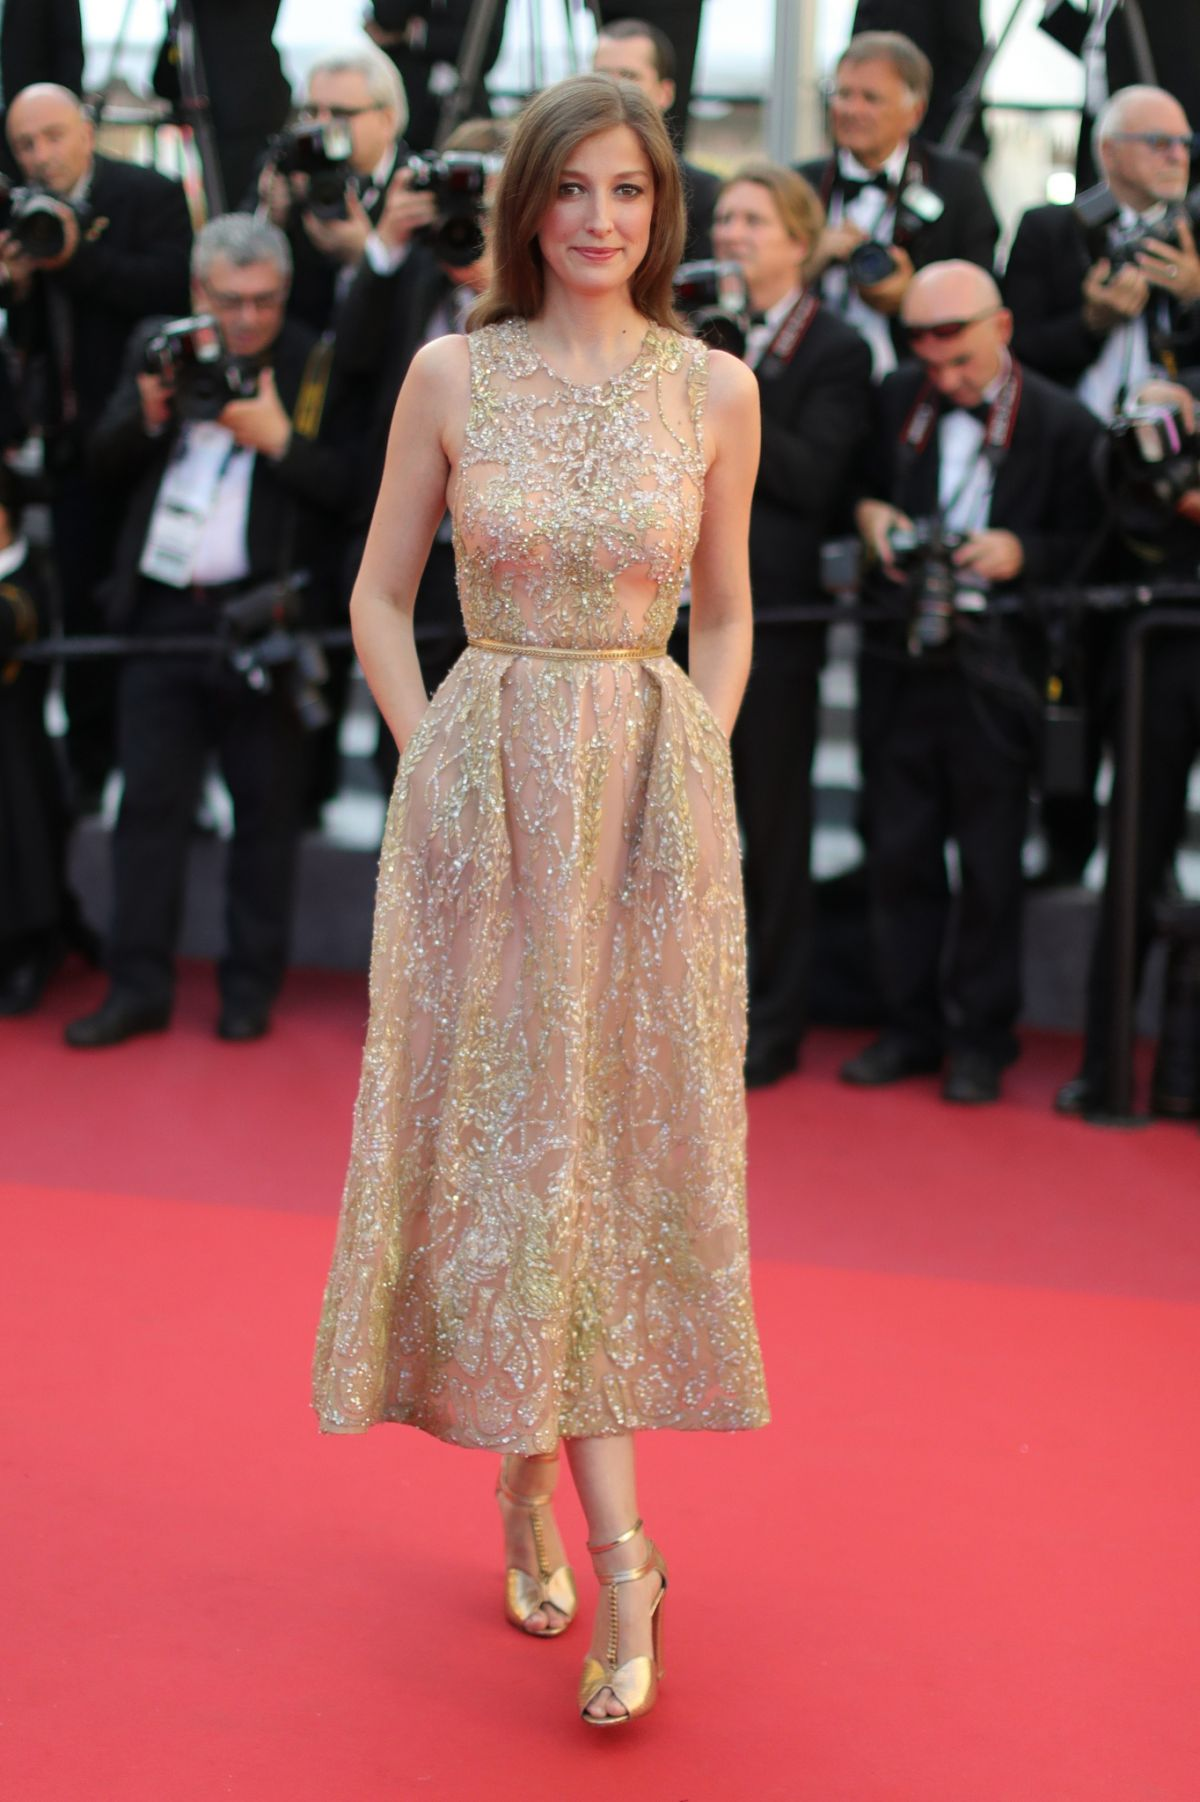 ALEXANDRA MARIA LARA at 'Elle' Premiere at 69th Annual Cannes Film Festival 05/21/2016